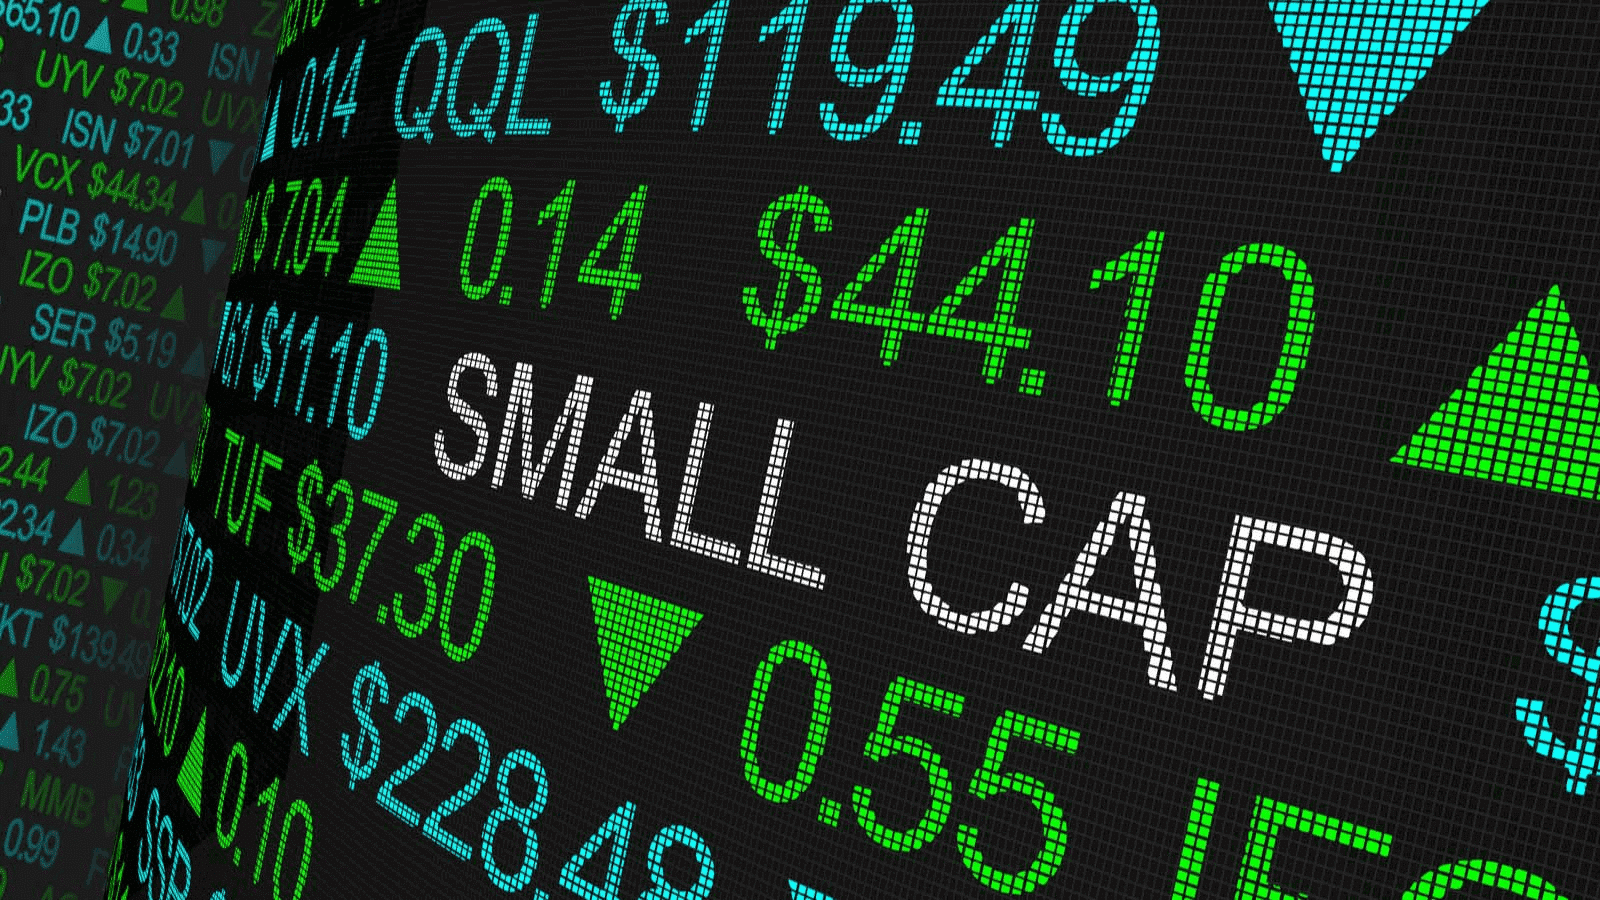 Small-Cap Stocks